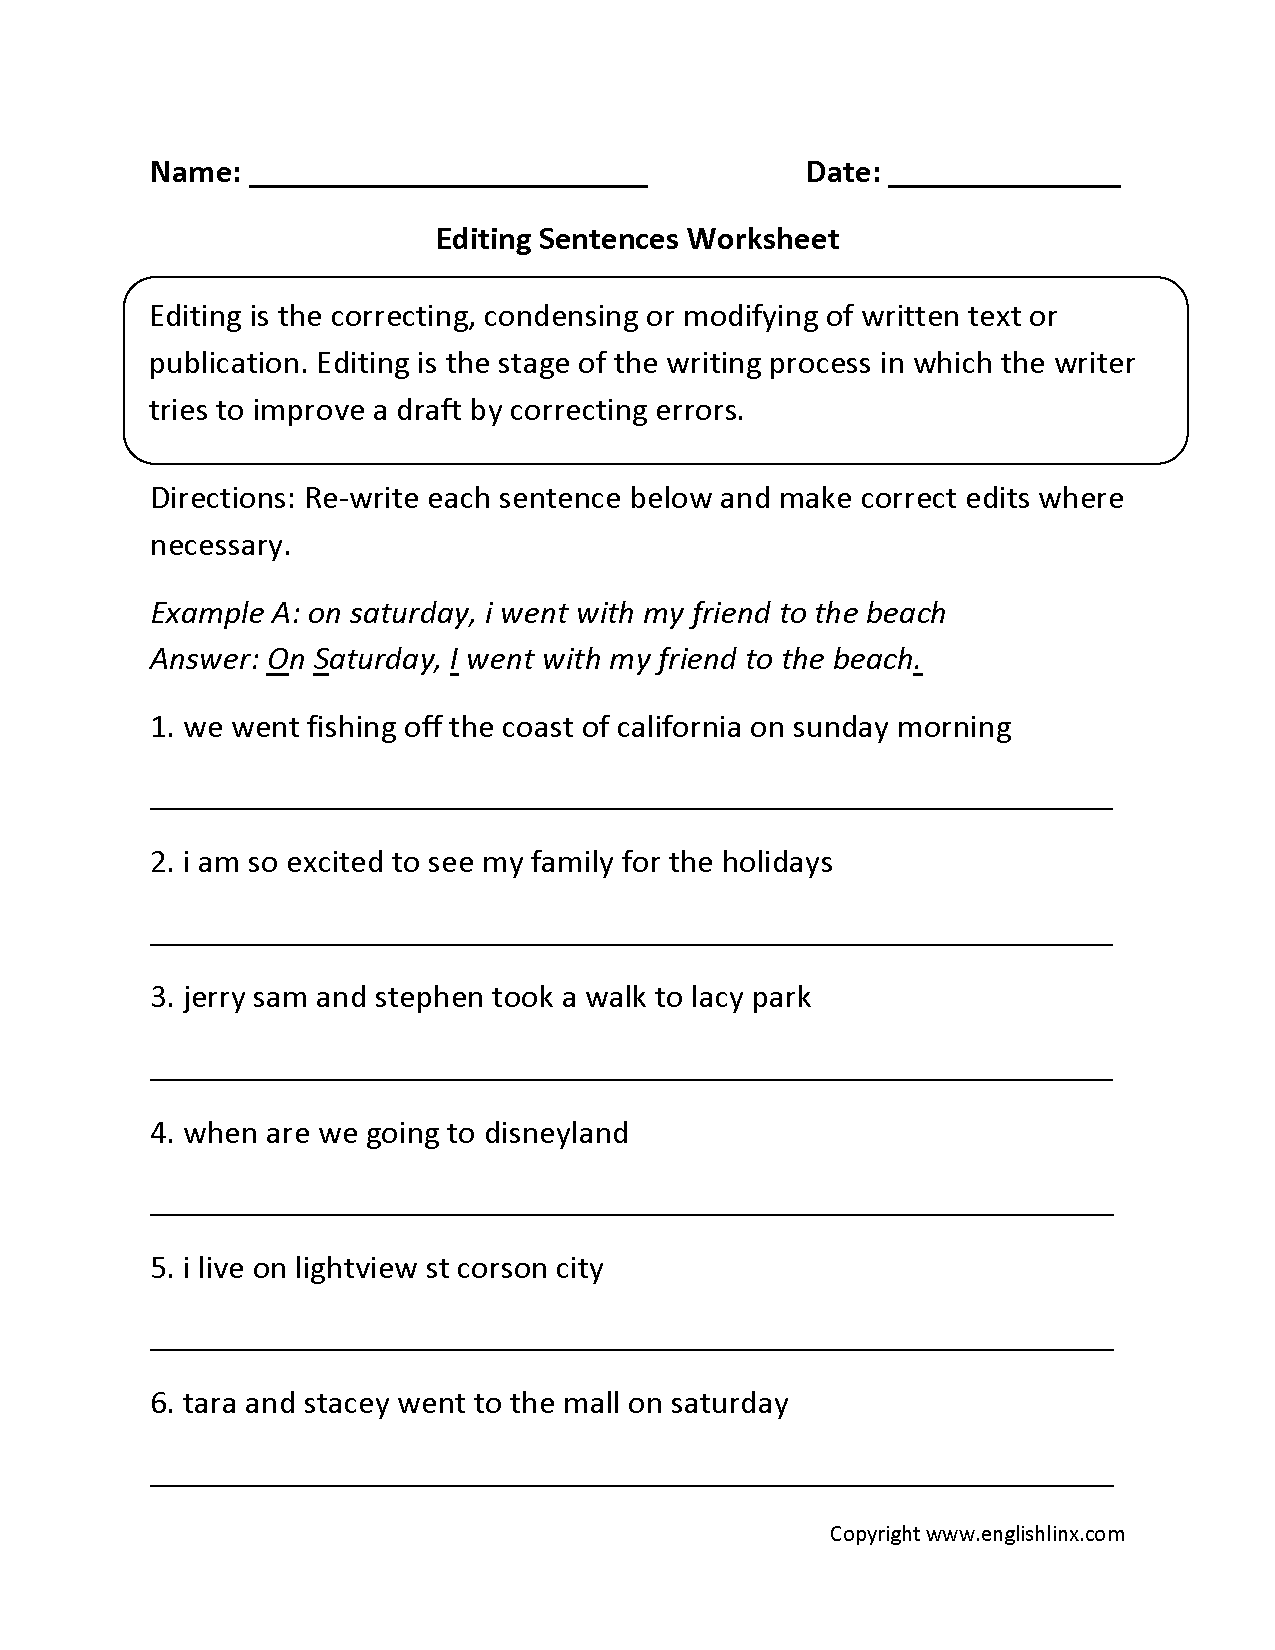 Worksheets Correct Sentences Worksheet sentence correction worksheets free library download correcting mistakes rewrite the sentences proofing and editing